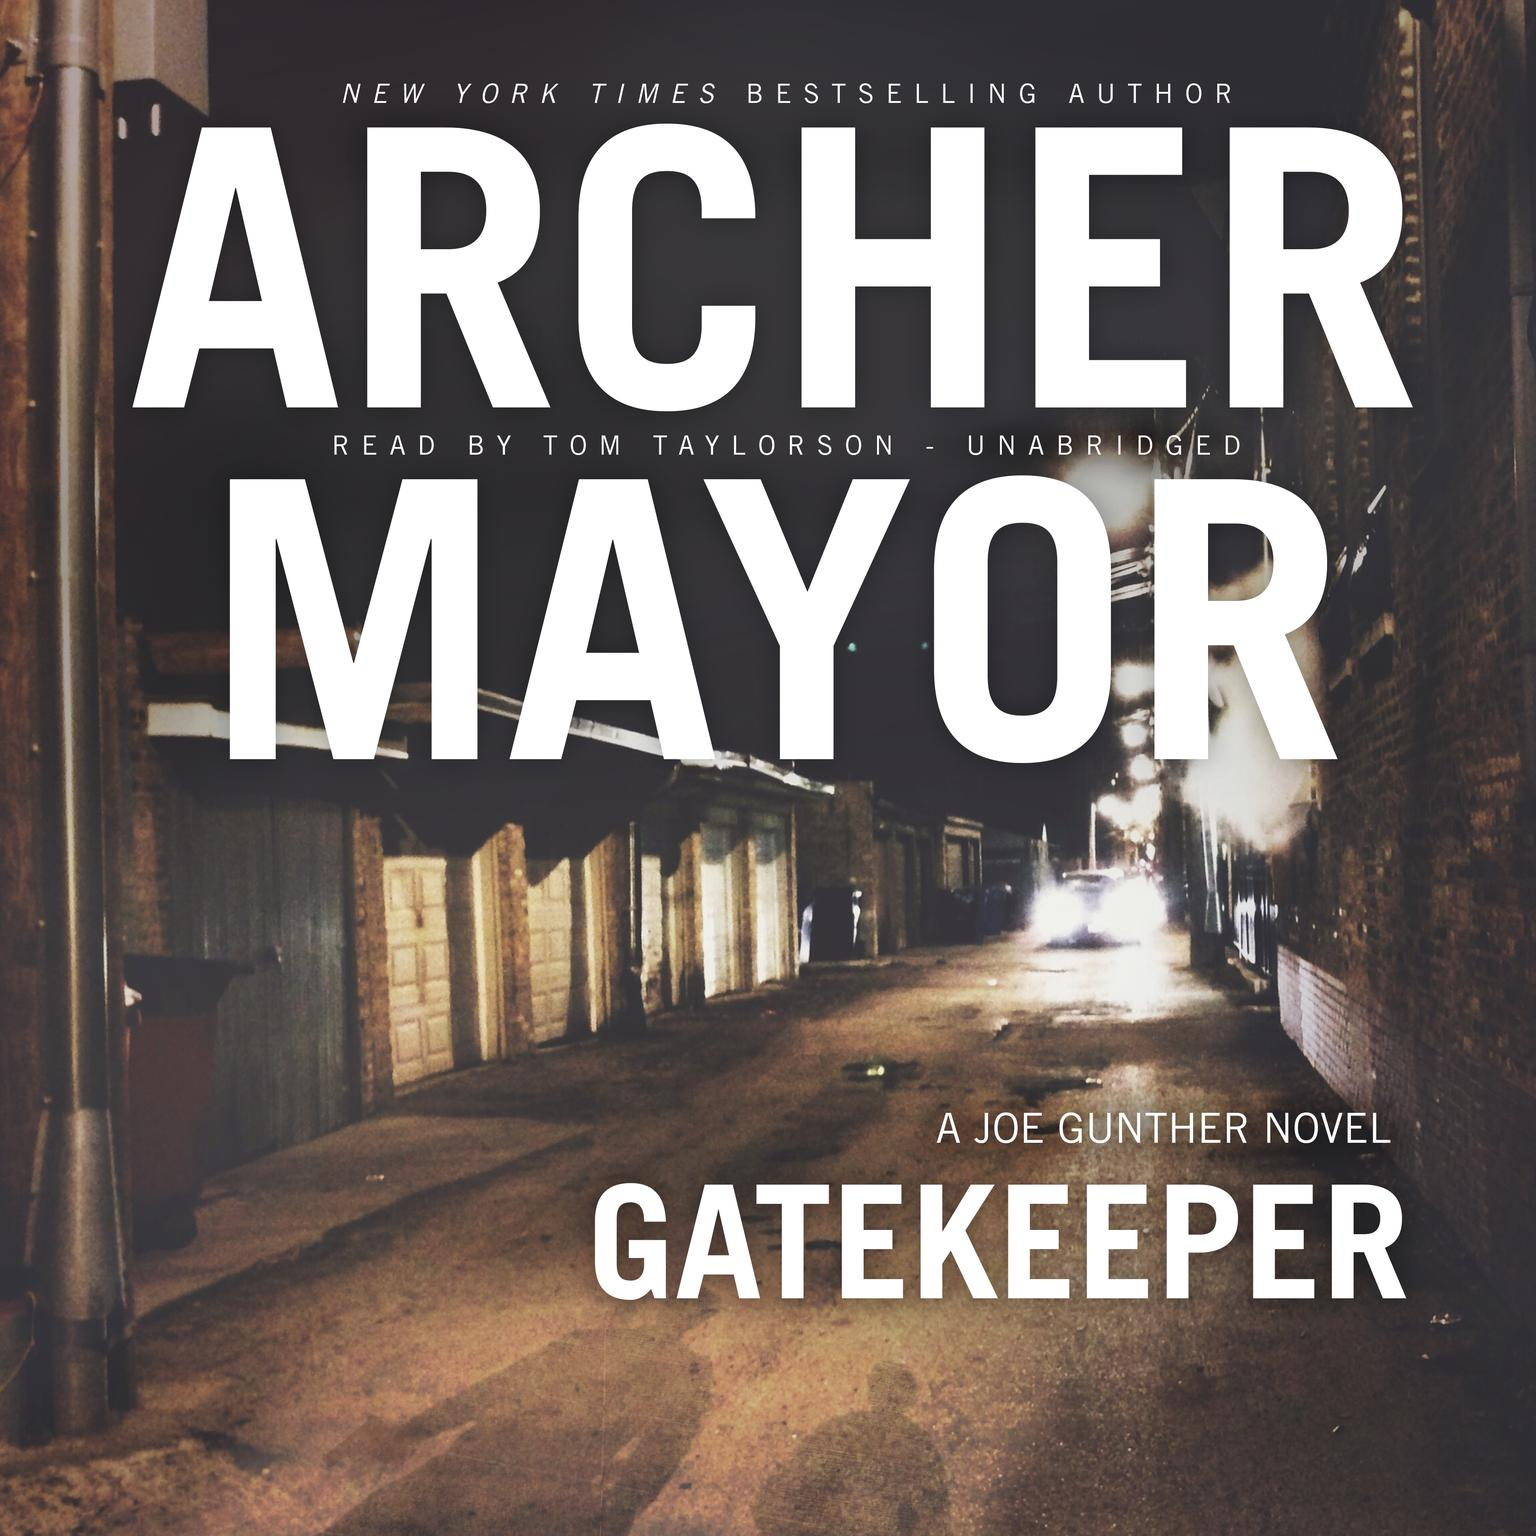 Printable Gatekeeper: A Joe Gunther Novel Audiobook Cover Art